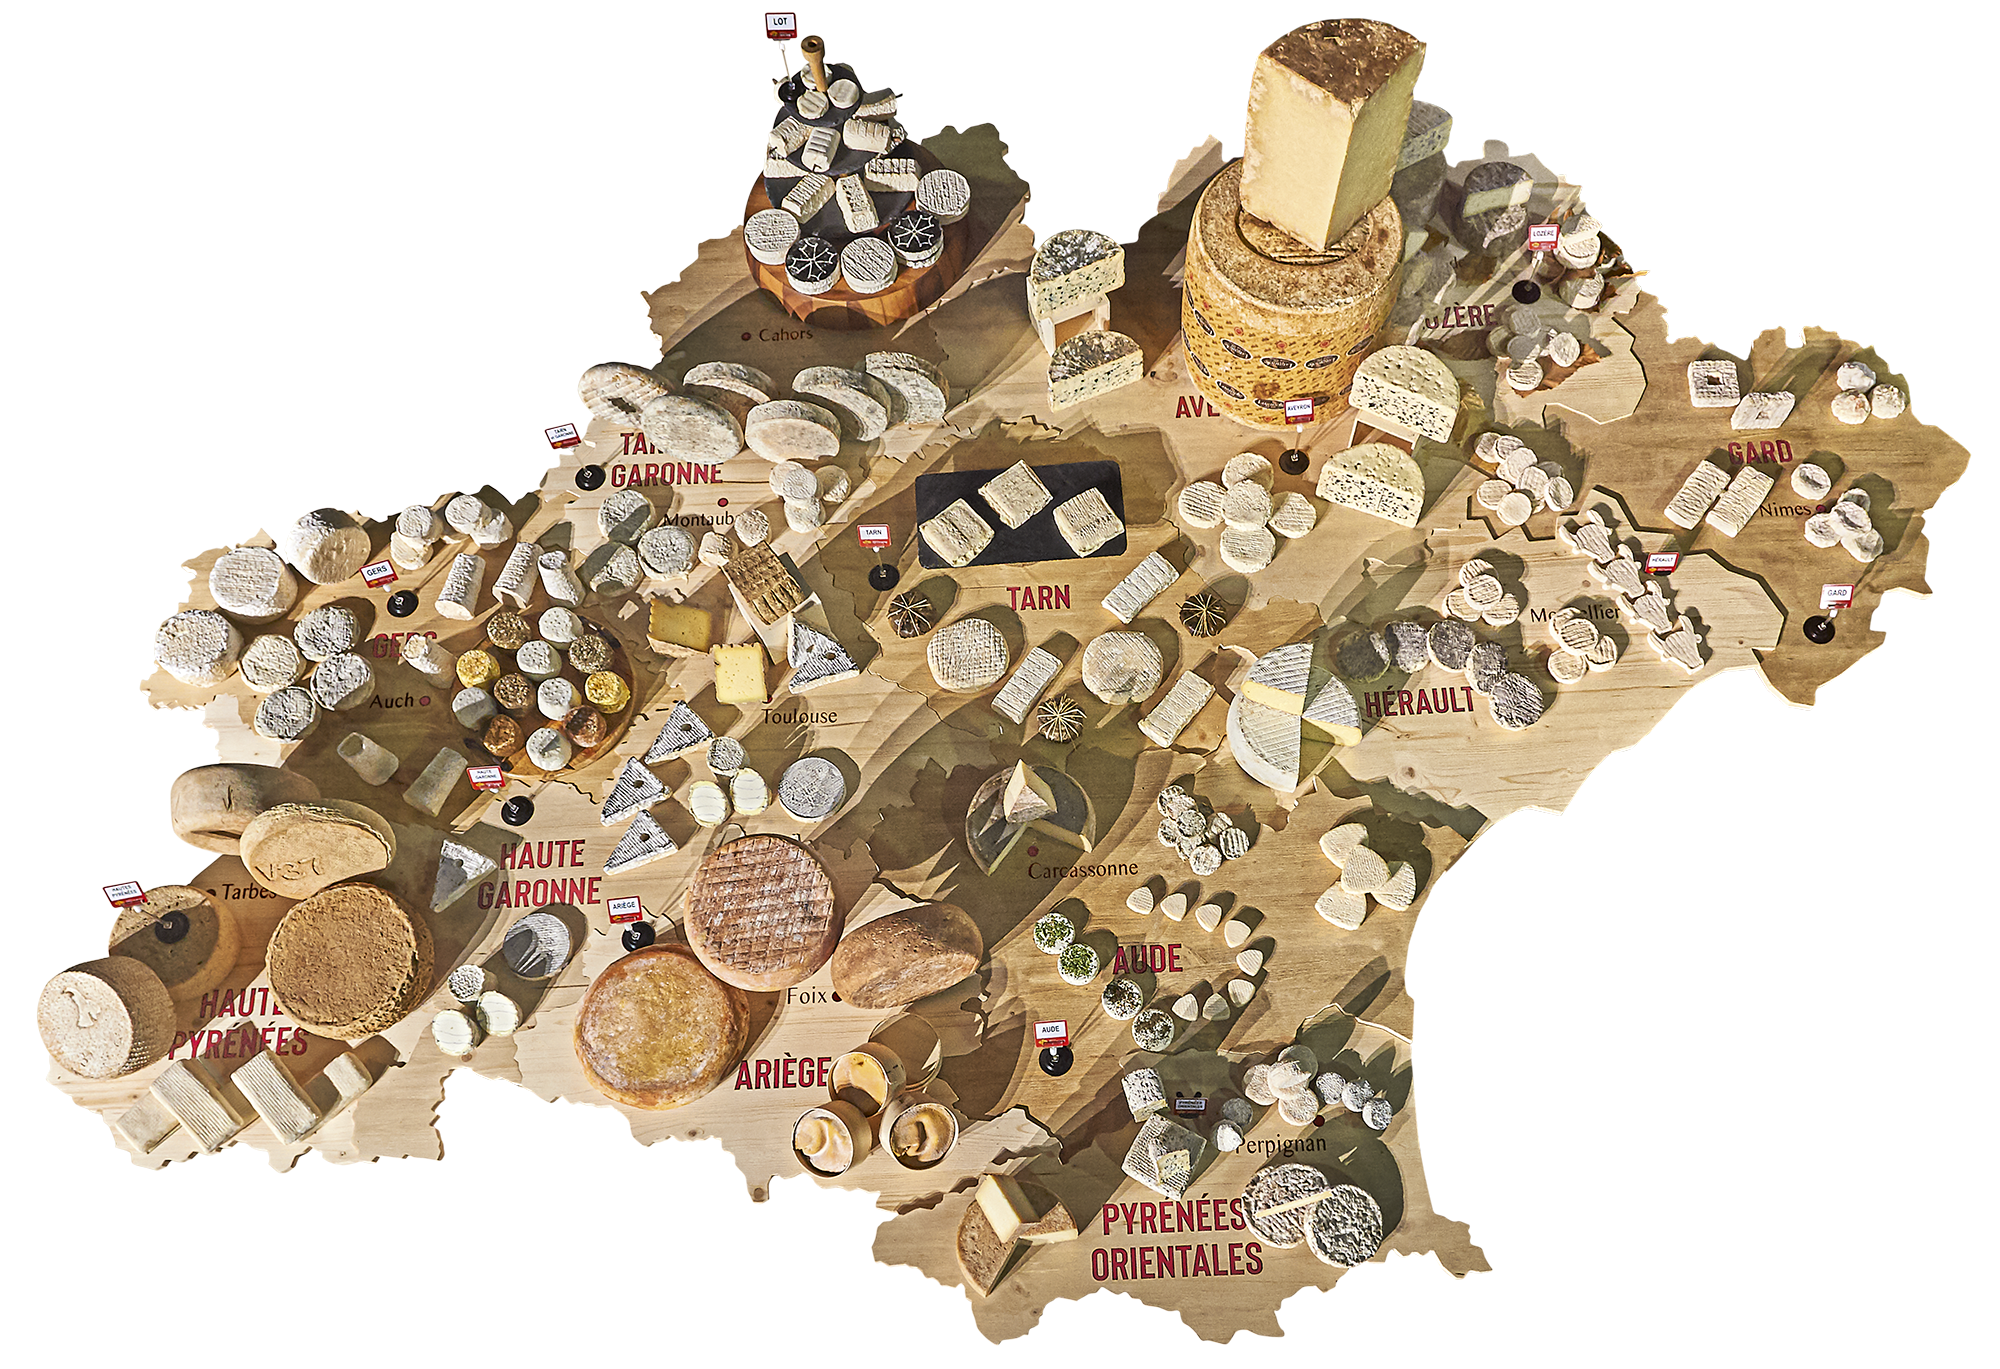 Image de carte illustrant les fromages d'occitanie